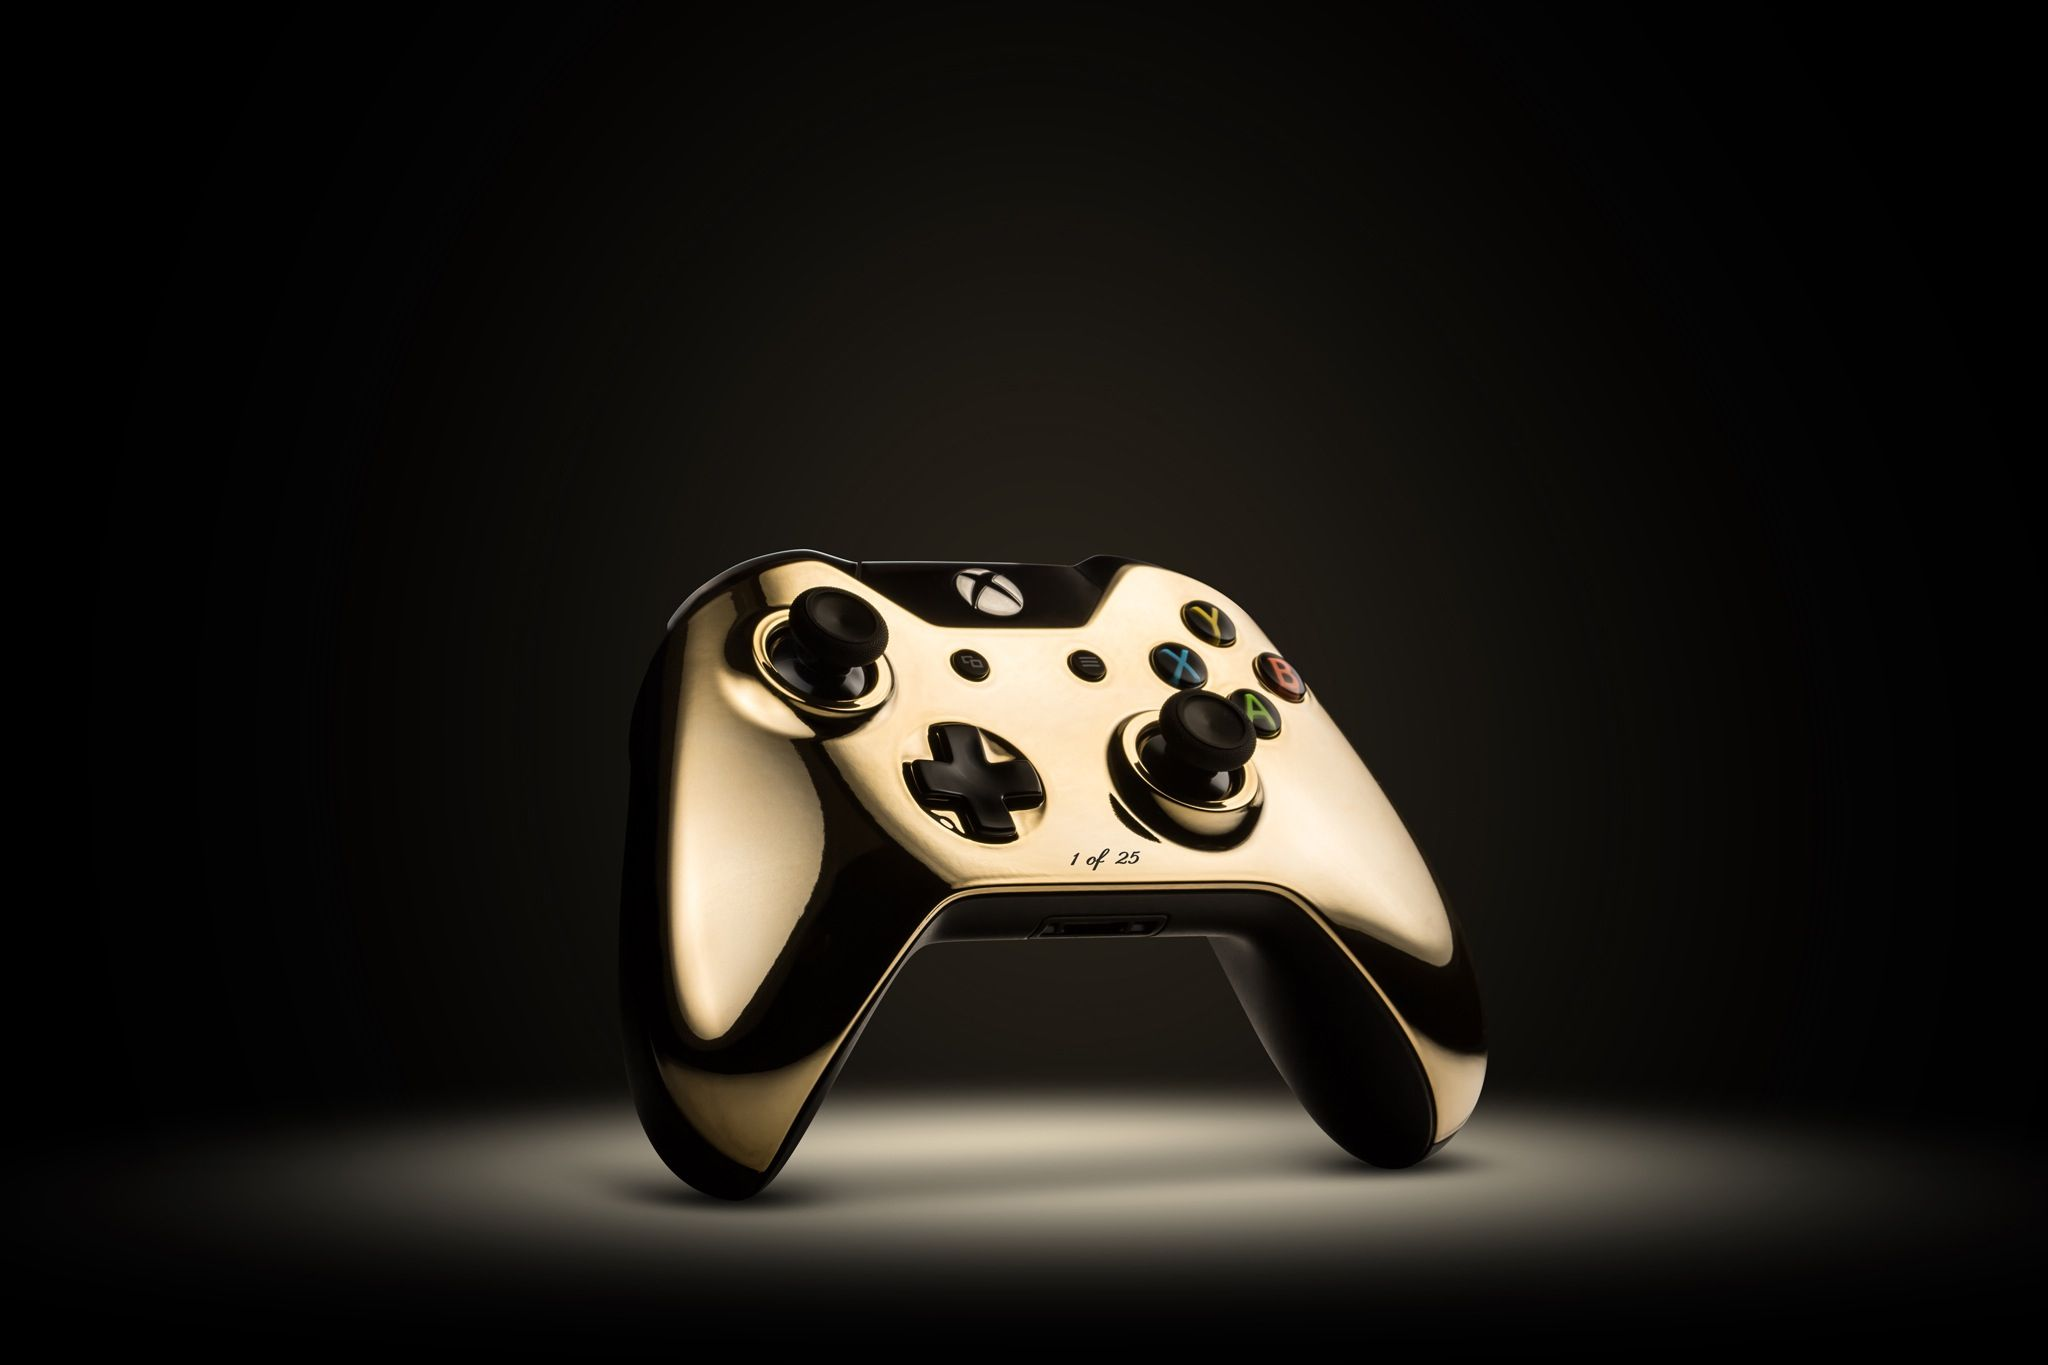 24k Gold Xbox One Controller Is Amazing Xbox One Controller Video Game Controller Xbox One